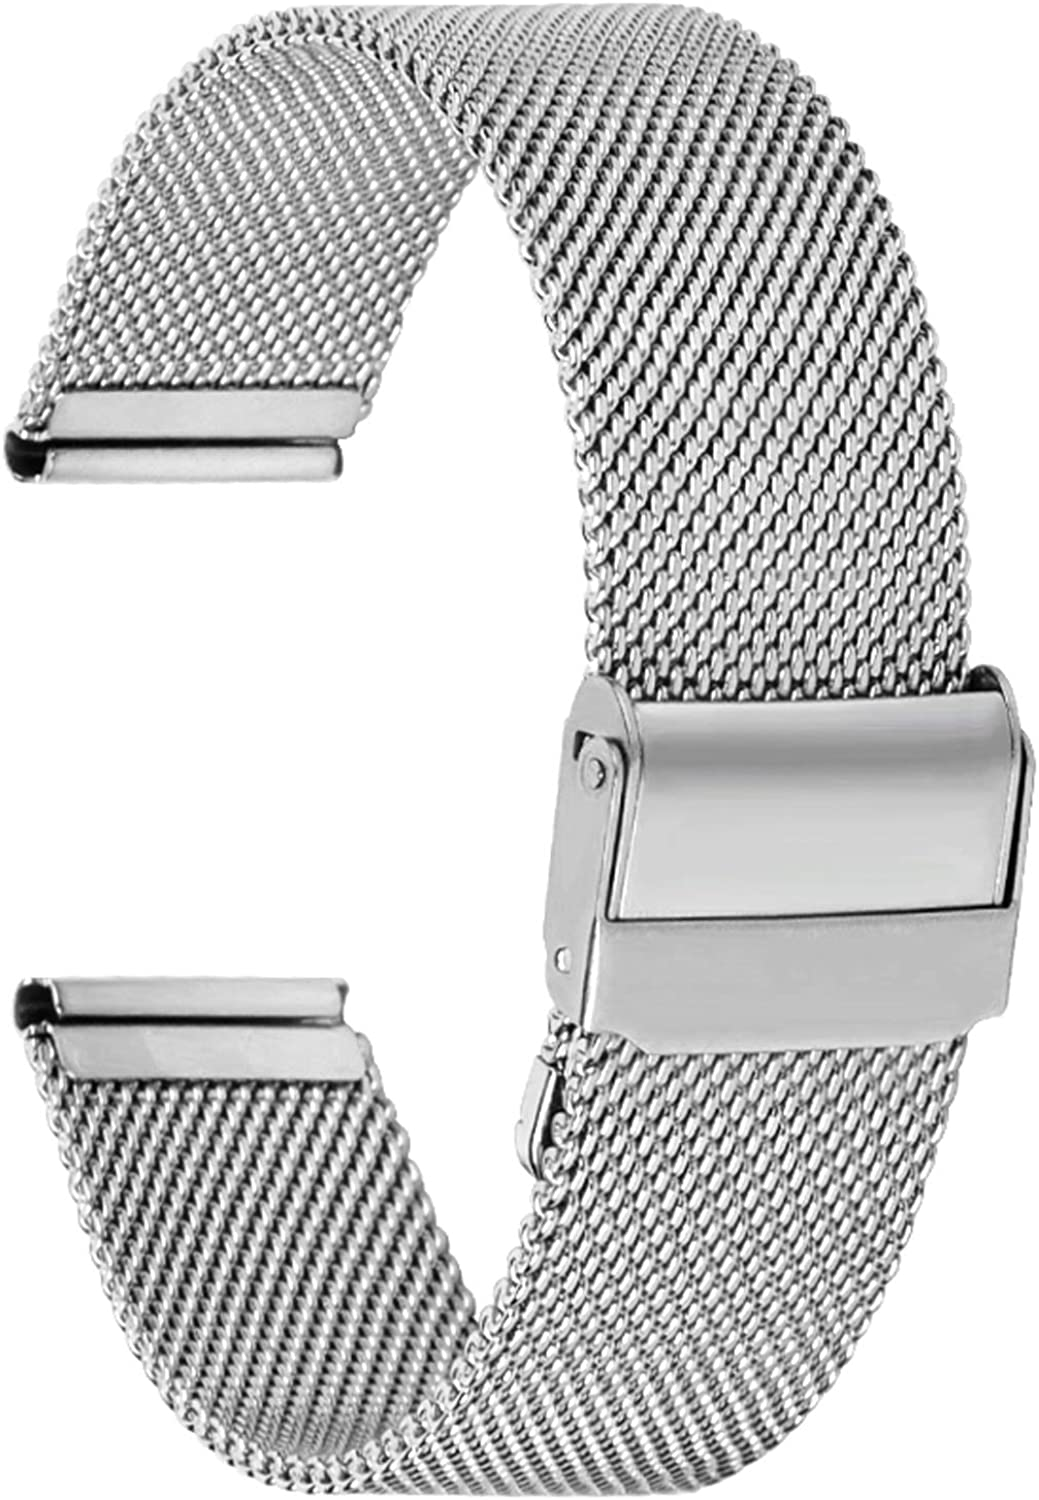 Fullmosa Watch Band,Stainless Steel Watch Band Replacement Strap for 18mm 20mm 22mm